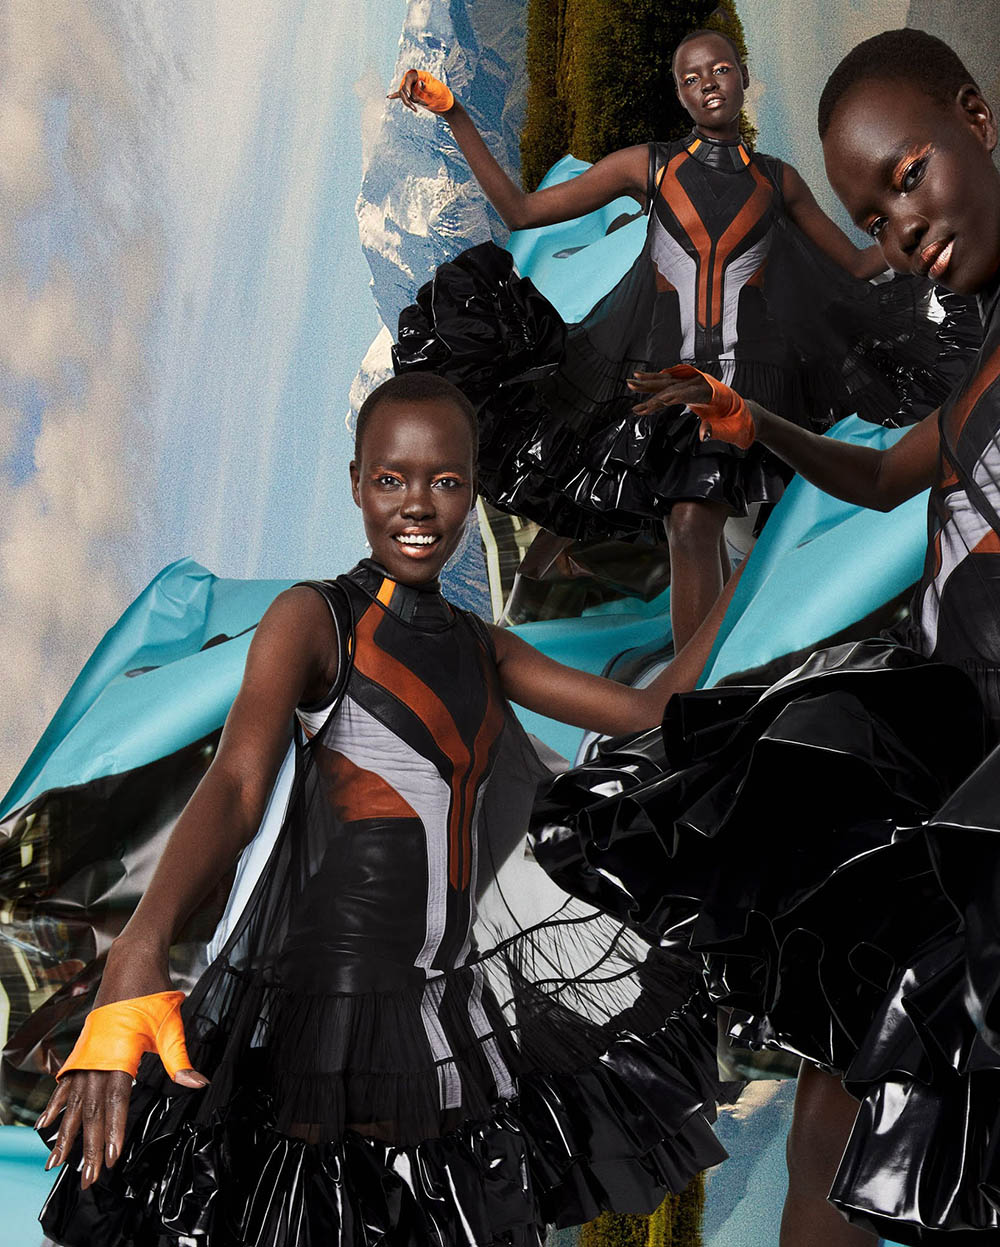 Grace Bol by Quentin Jones for Marie Claire US Fall 2020